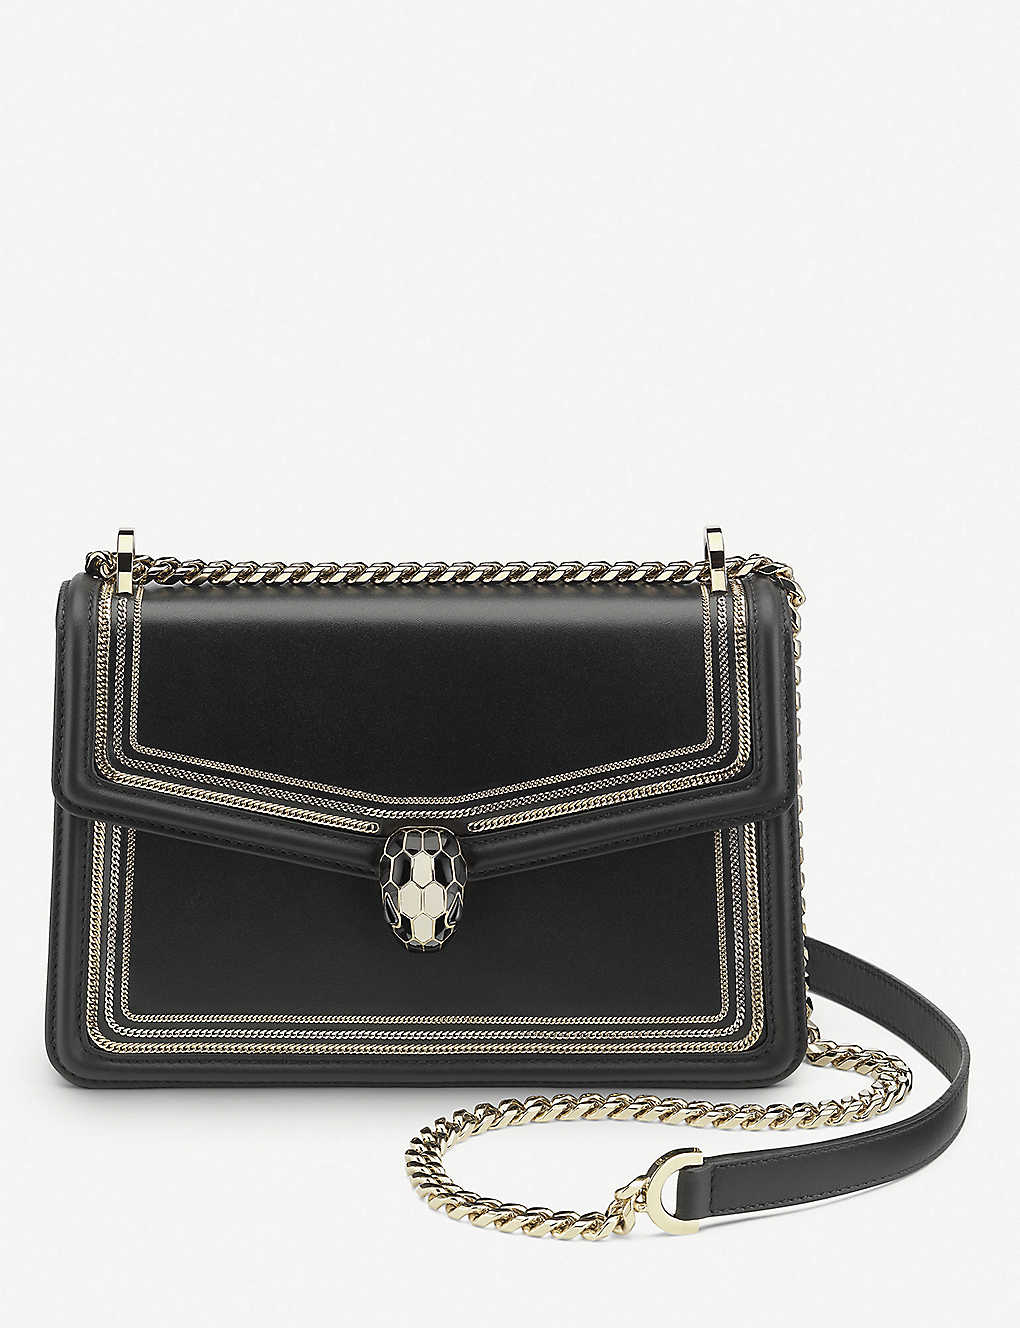 BVLGARI: Serpenti Forever three-chain leather shoulder bag